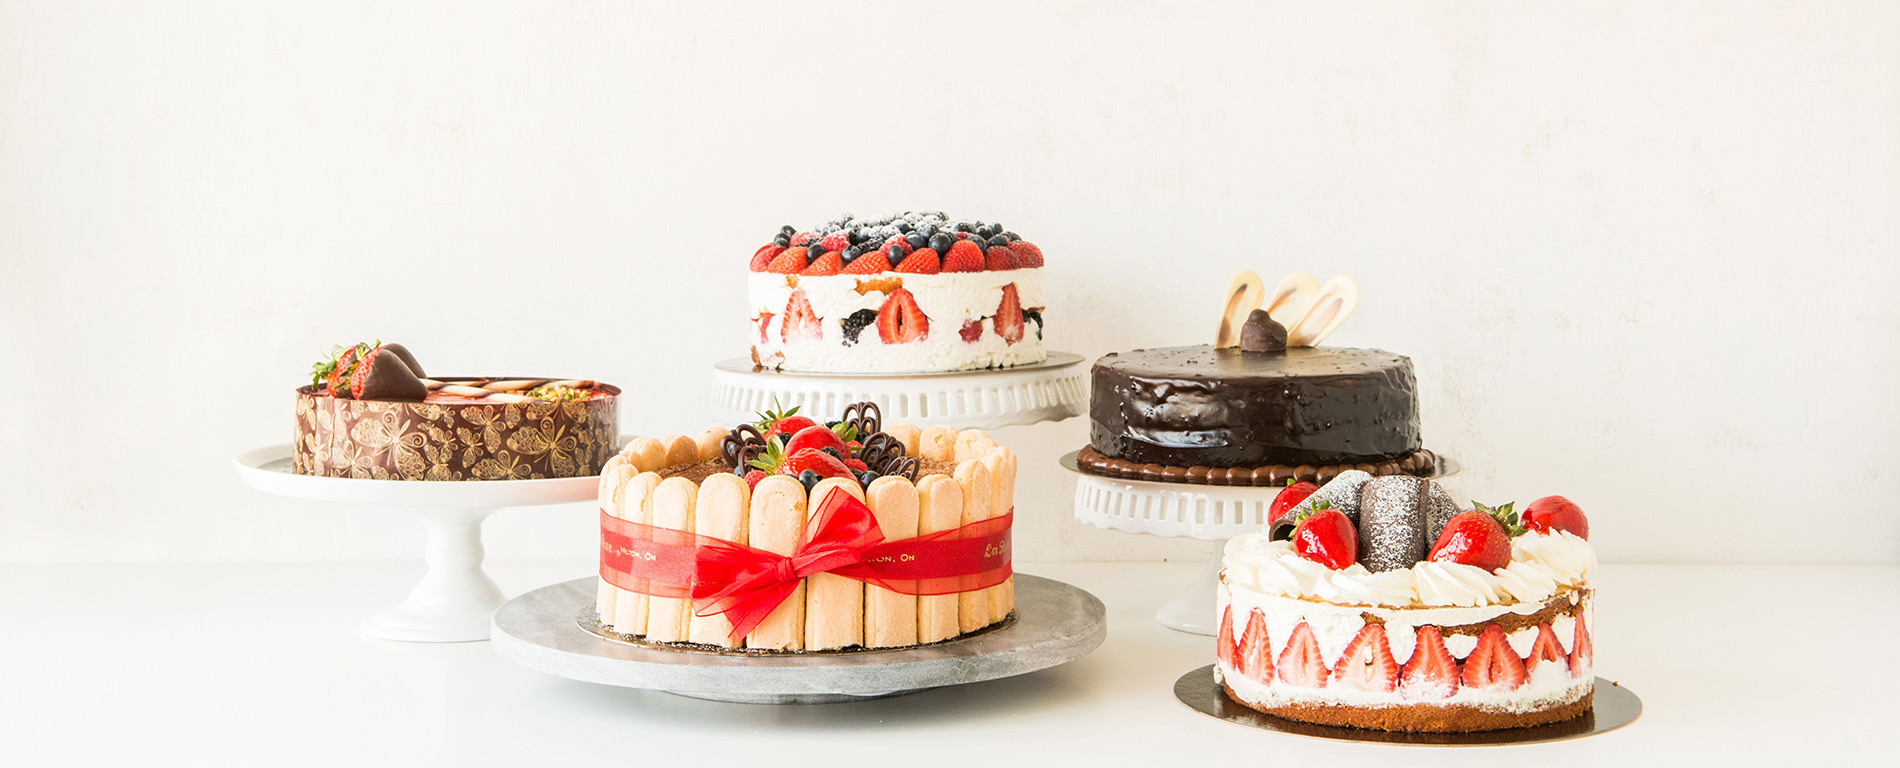 Casual Events & Classic Cakes by La Rose in Milton, ON